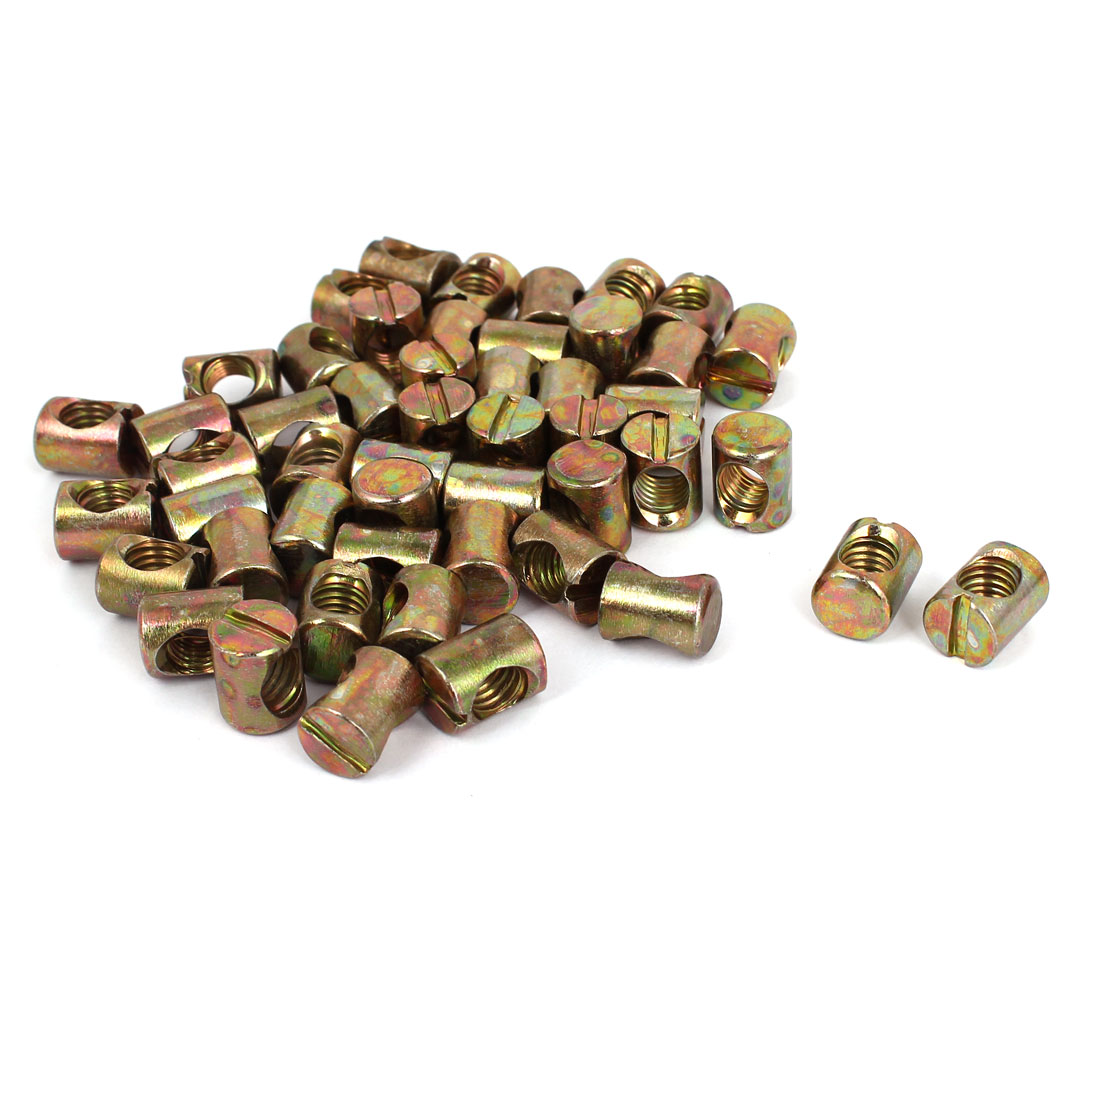 Unique Bargains M8x12mmx15mm Barrel Bolts Cross Dowel Slotted Furniture Nut (50-pack)